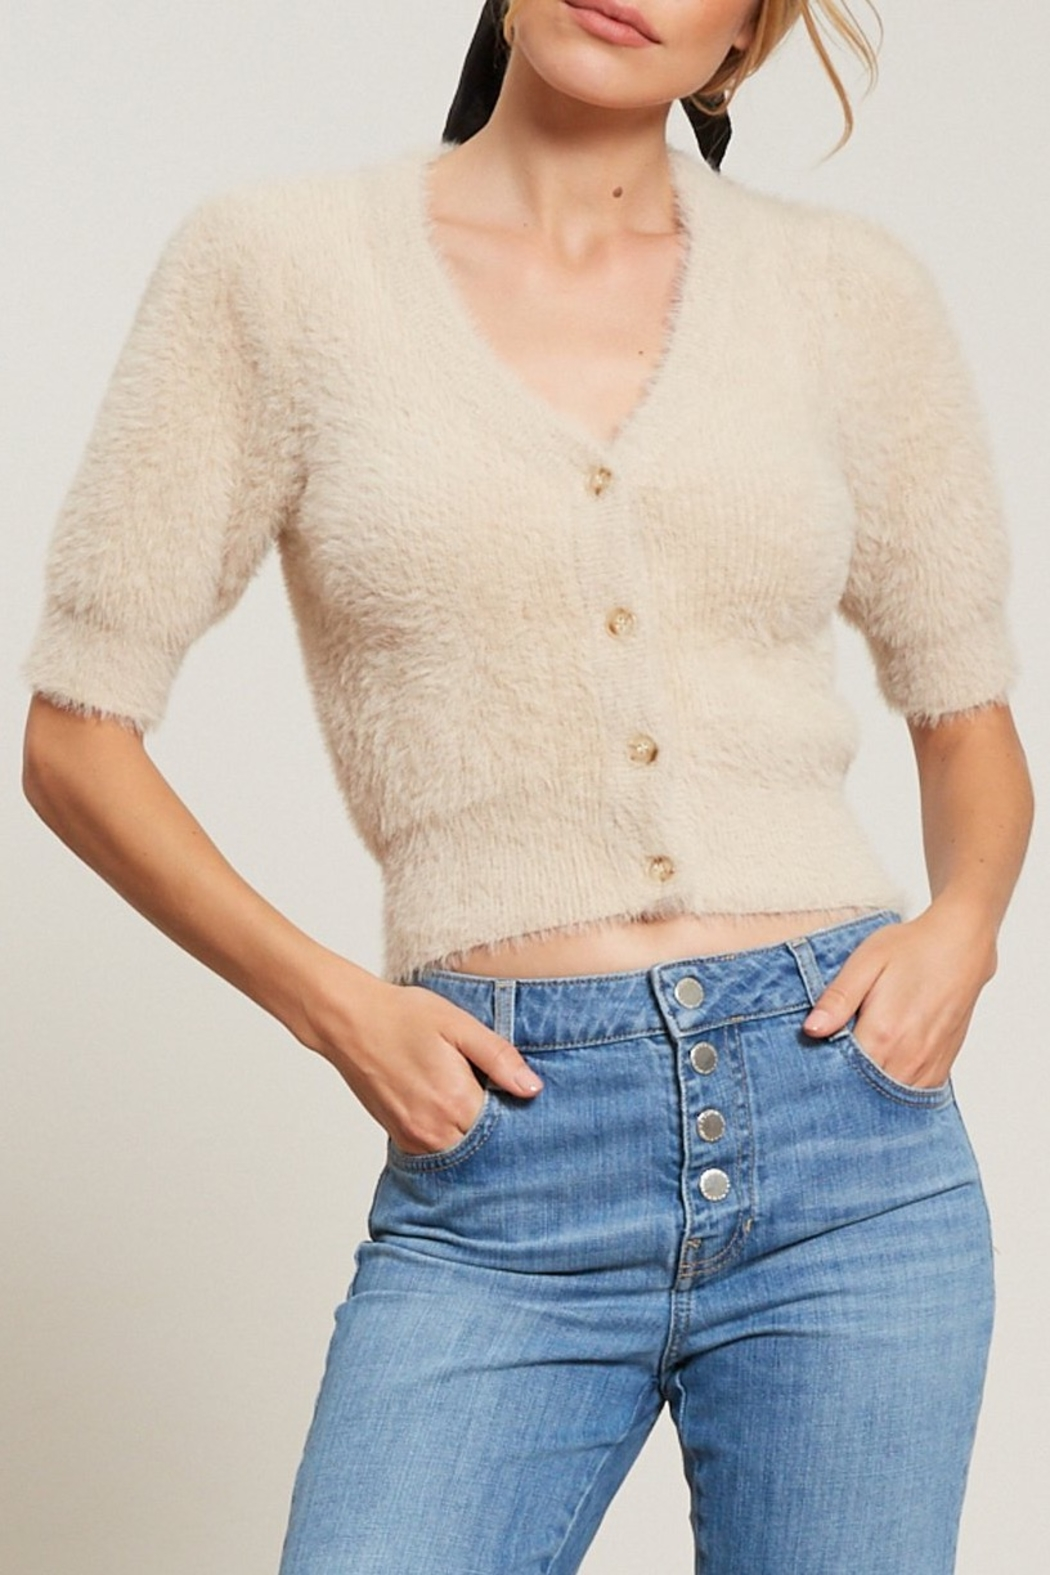 Lucy Paris  Puff sleeve cardigan - Main Image